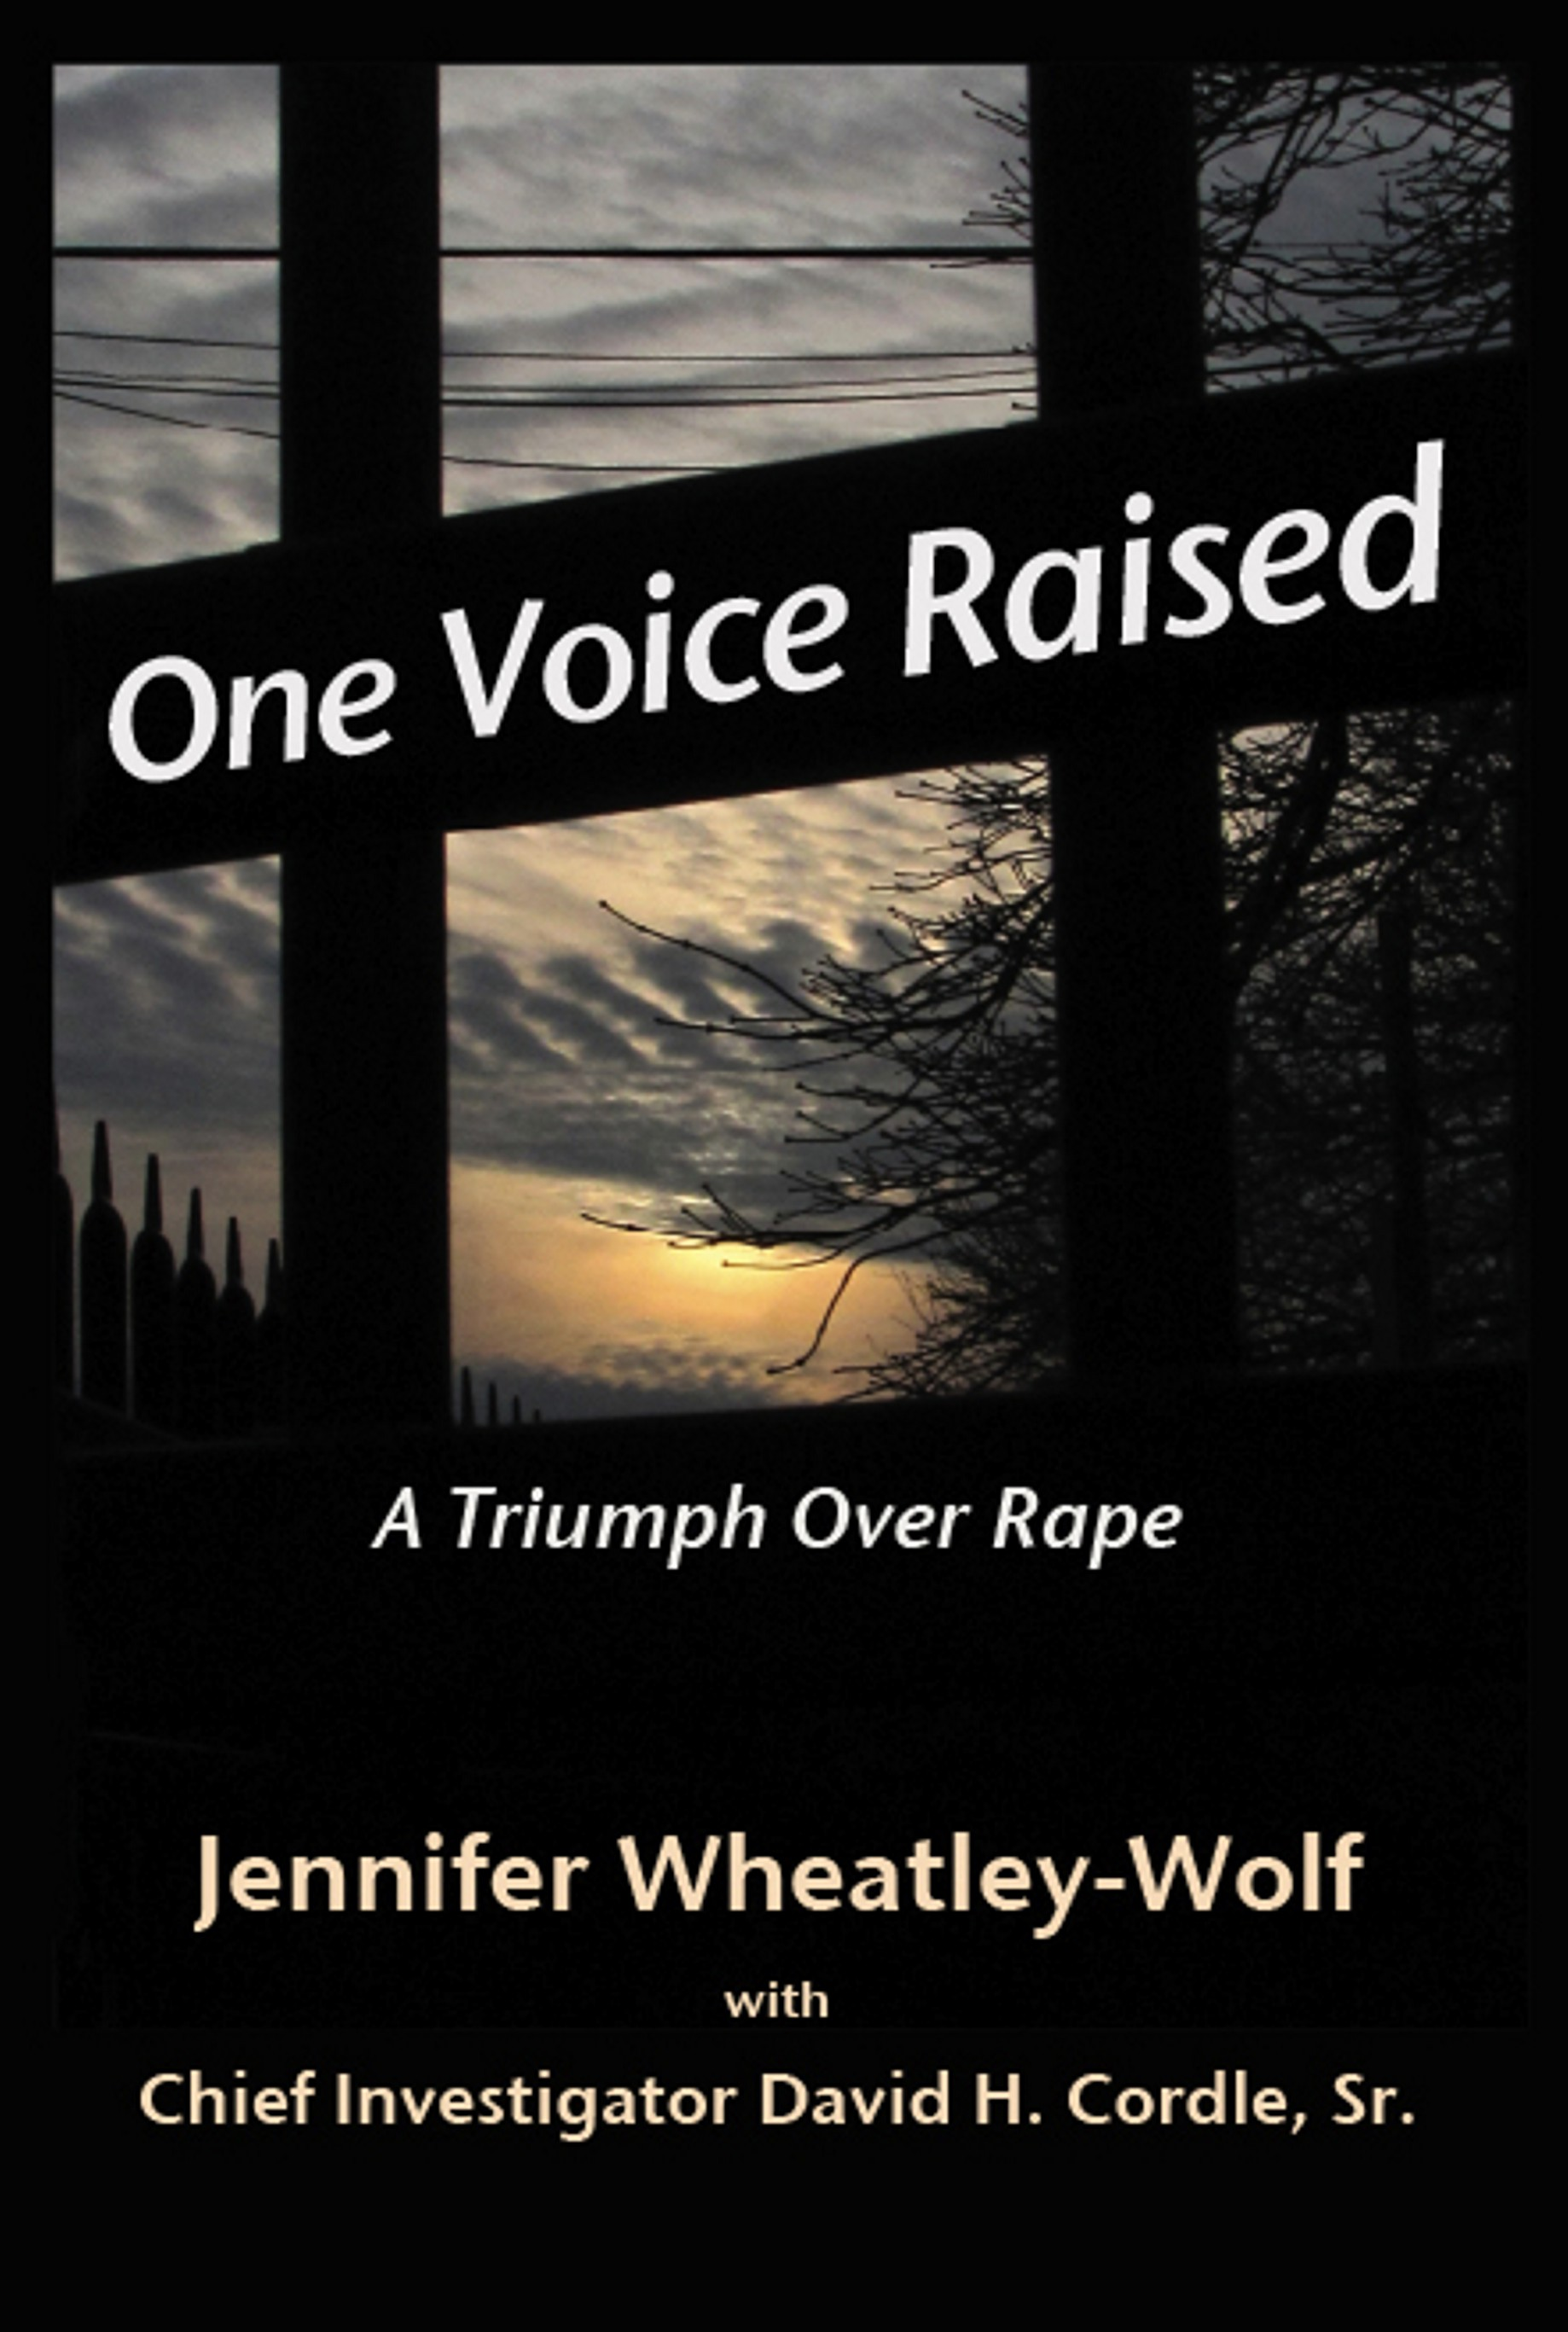 One Voice Raised by Jennifer Wheatley-Wolf